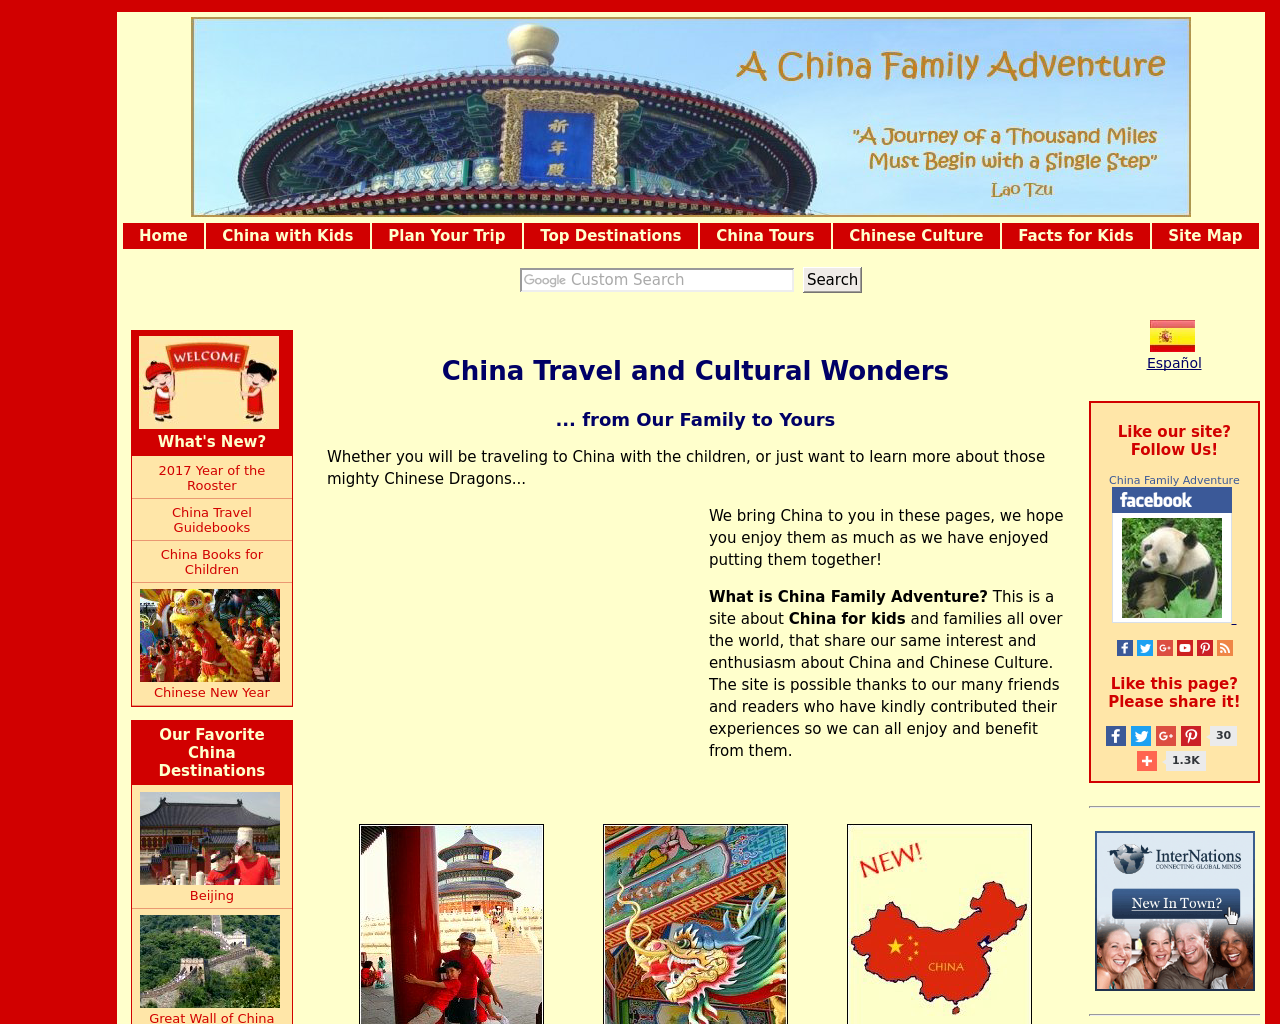 A-China-Family-Adventure-Advertising-Reviews-Pricing